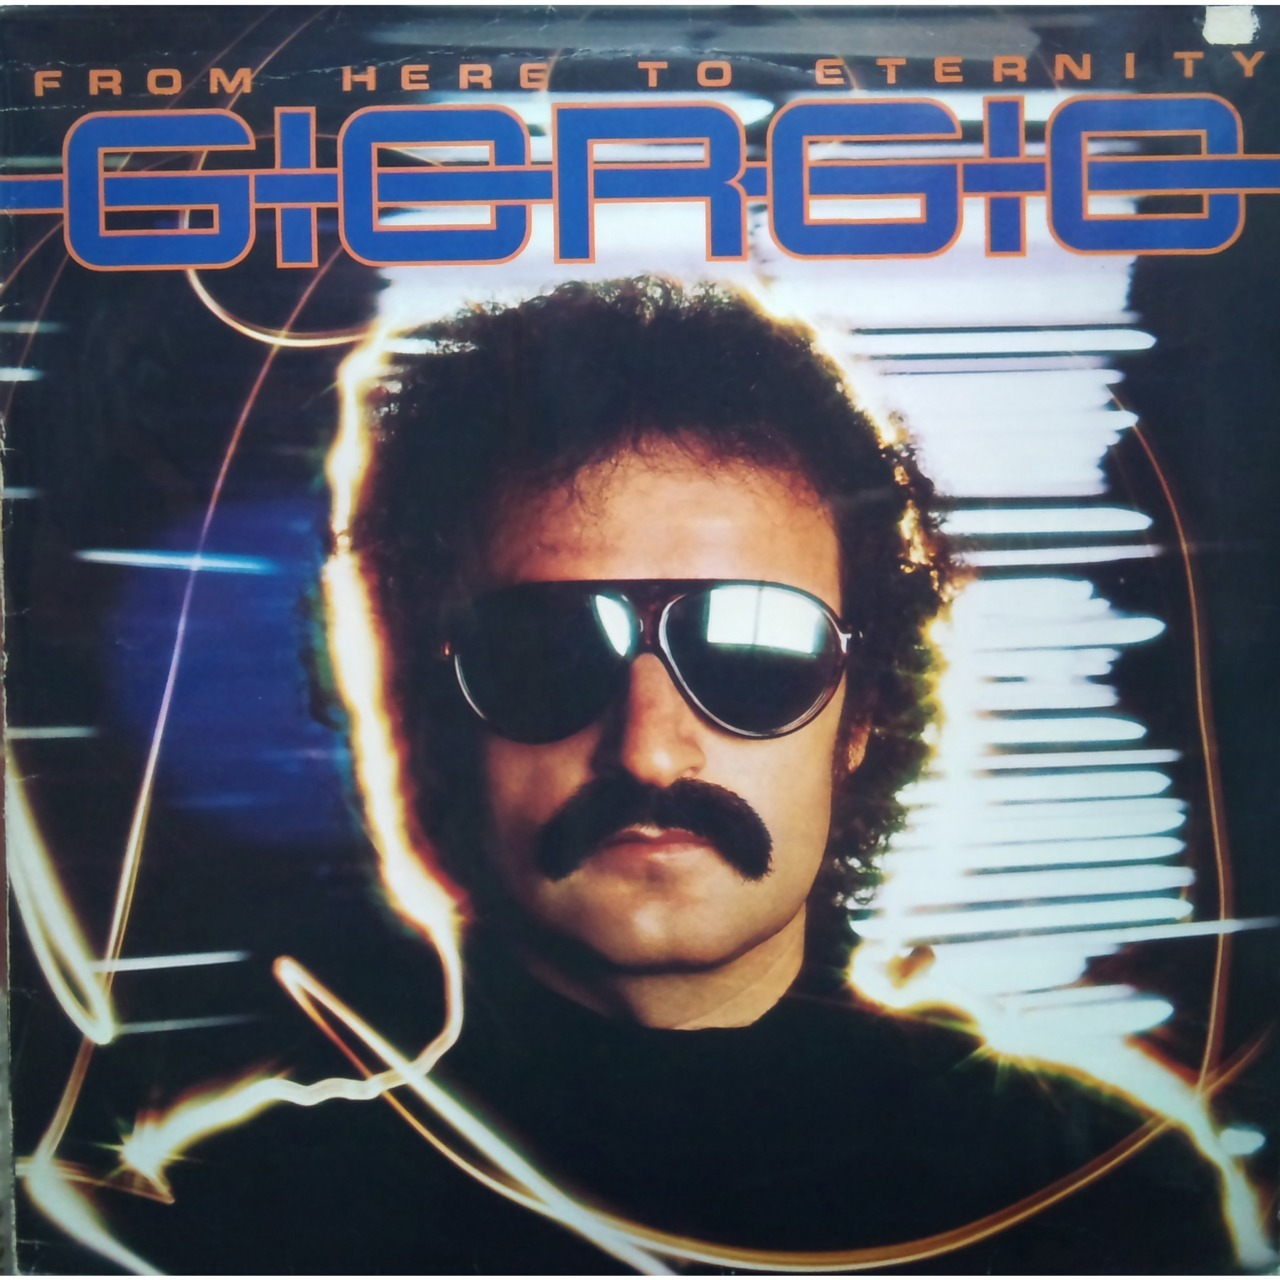 Happy birthday Giorgio Moroder! Might possibly have a tribute in store later tonight.